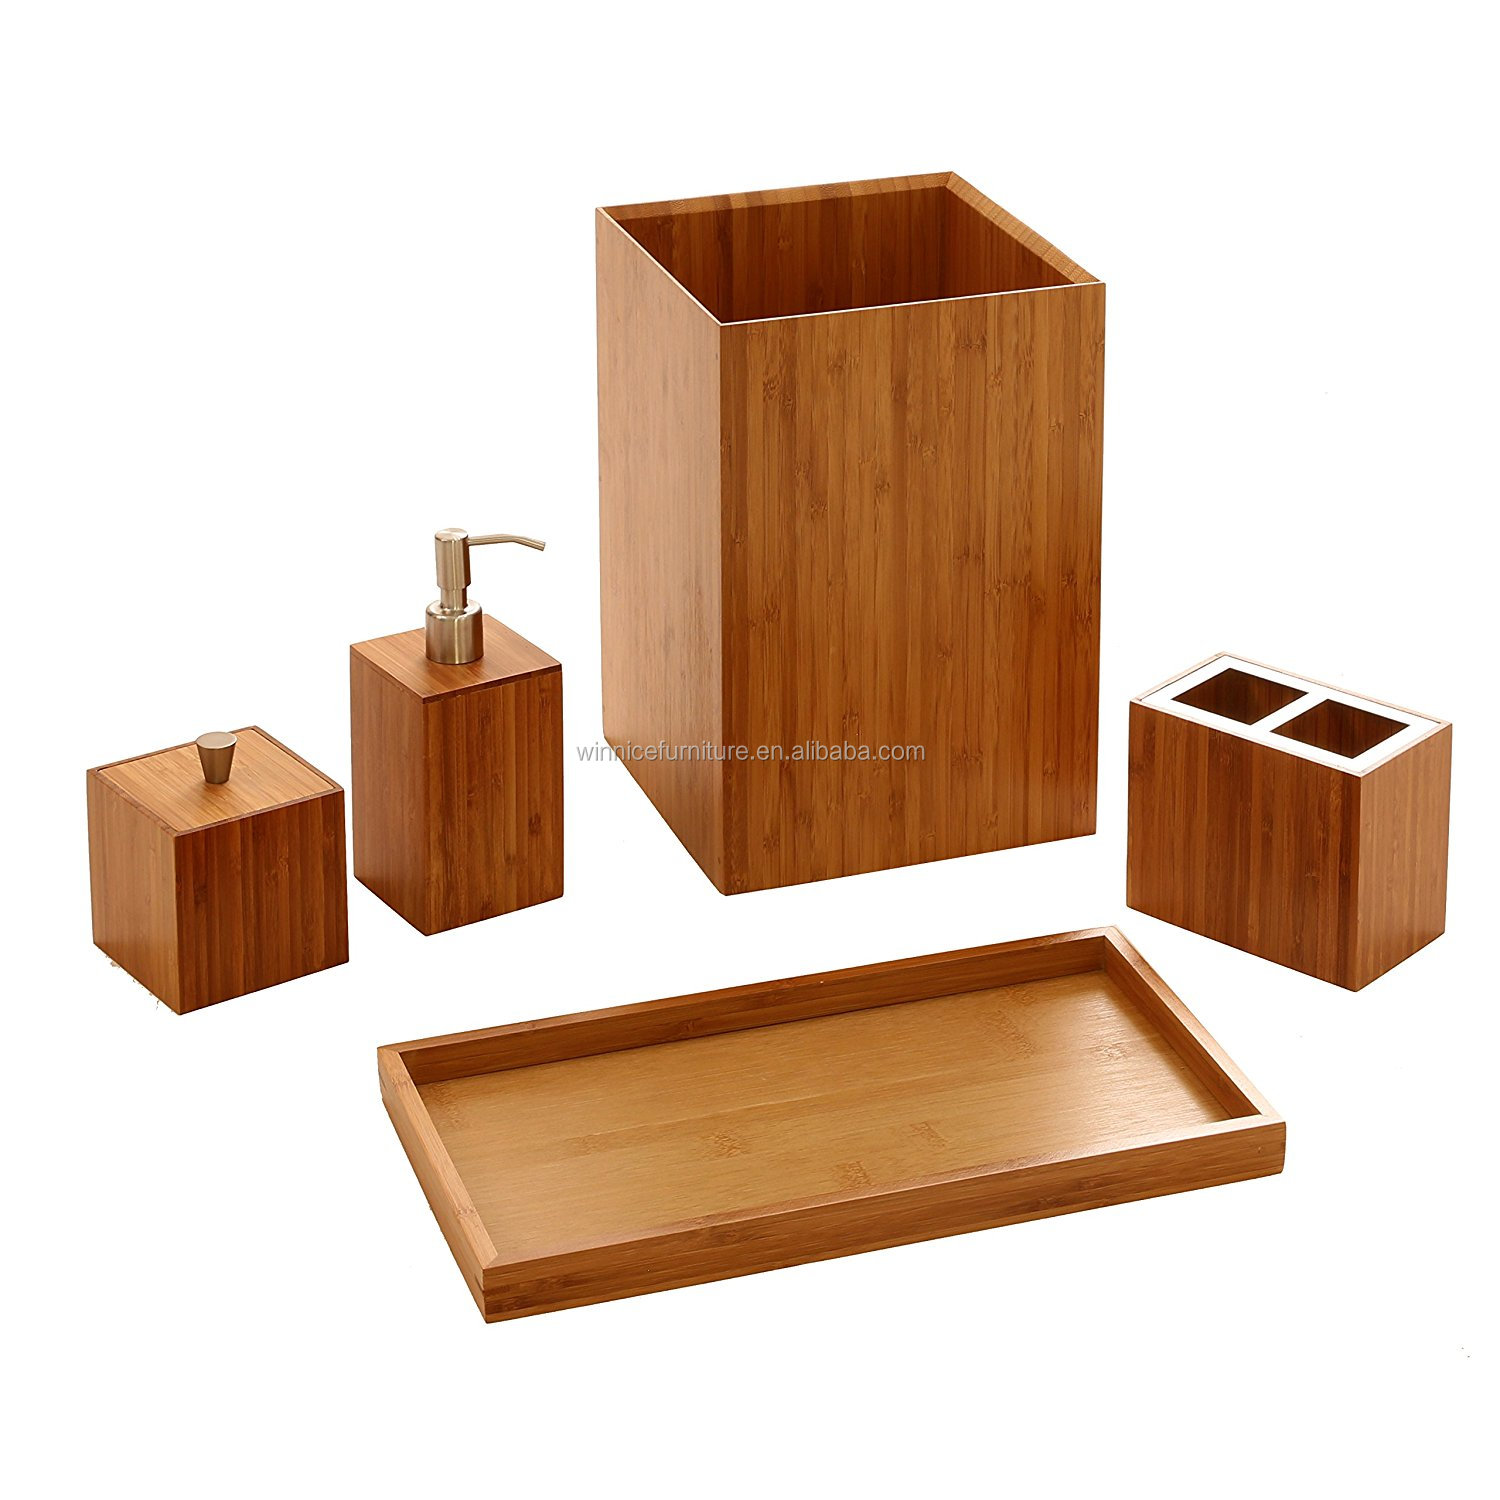 Manufacture Of Stylish Bathroom Accessory